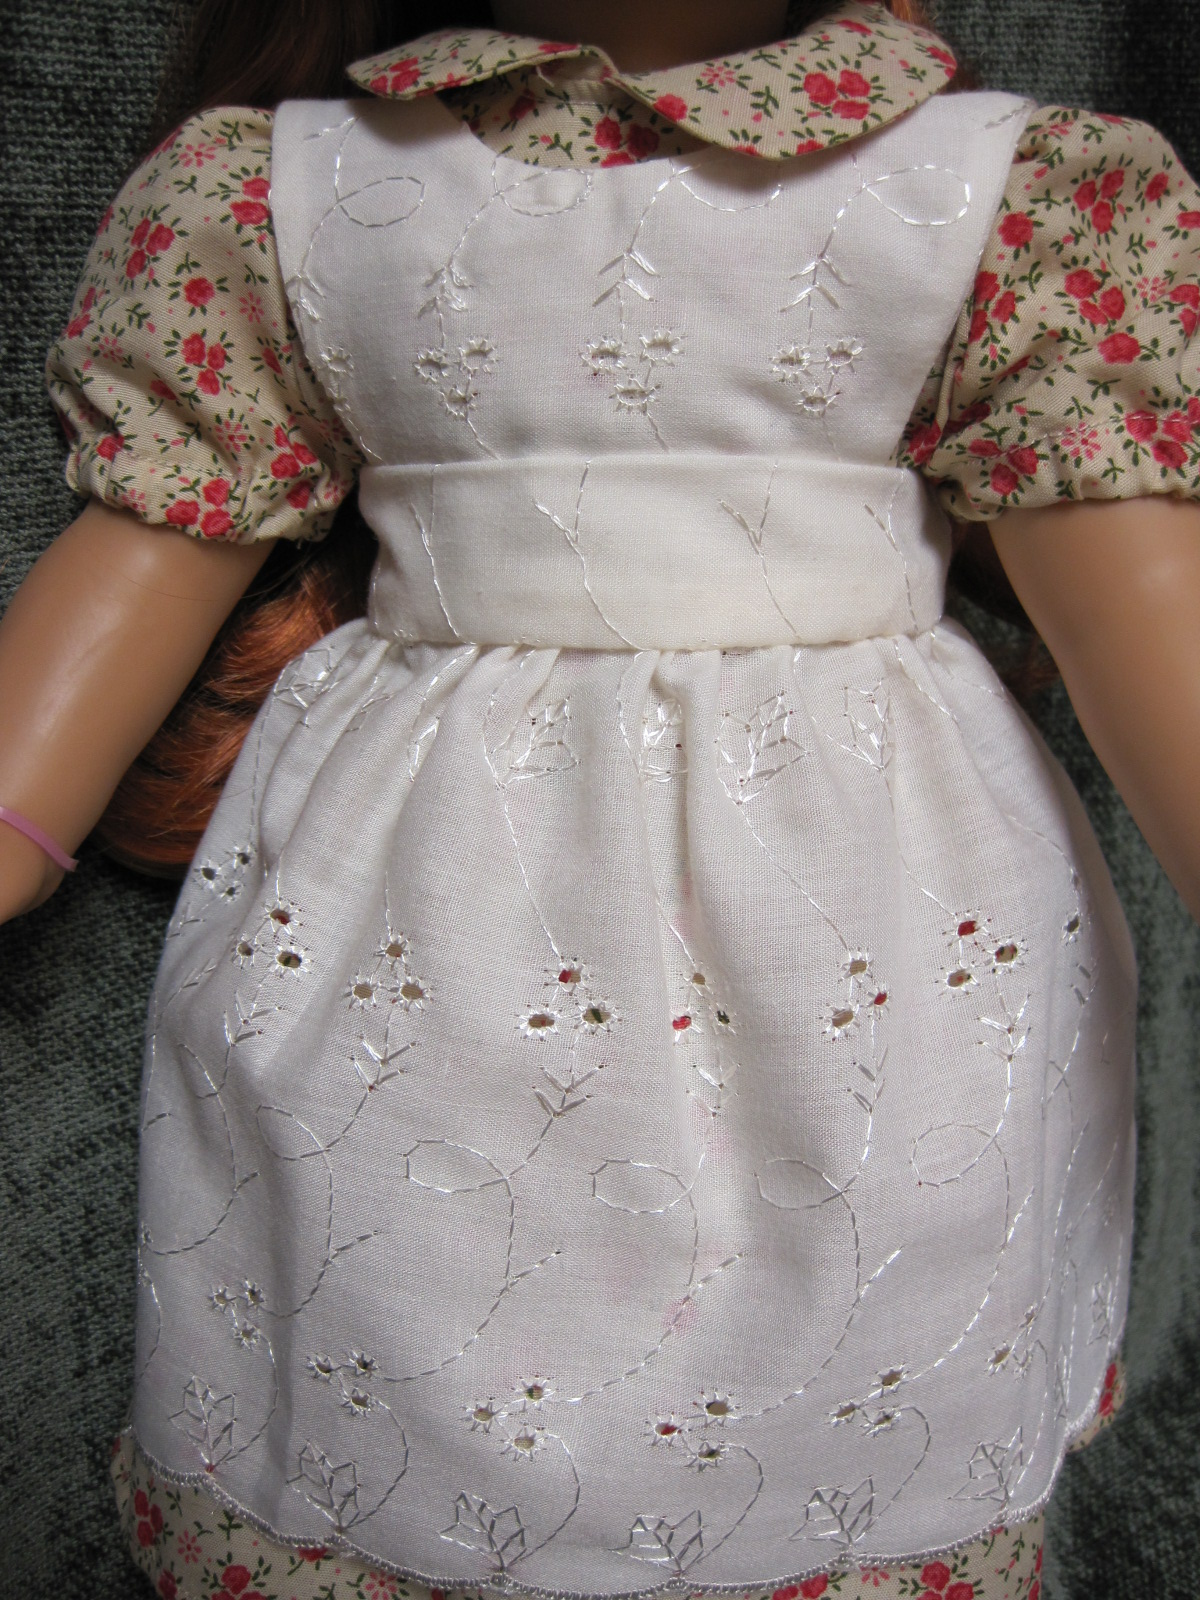 White pinafore apron ebay - Hailey Looks Absolutely Adorable In Her New Duds Above Is A Closer Pic Of The Apron Pinafore The Material Is Nice Quality And The